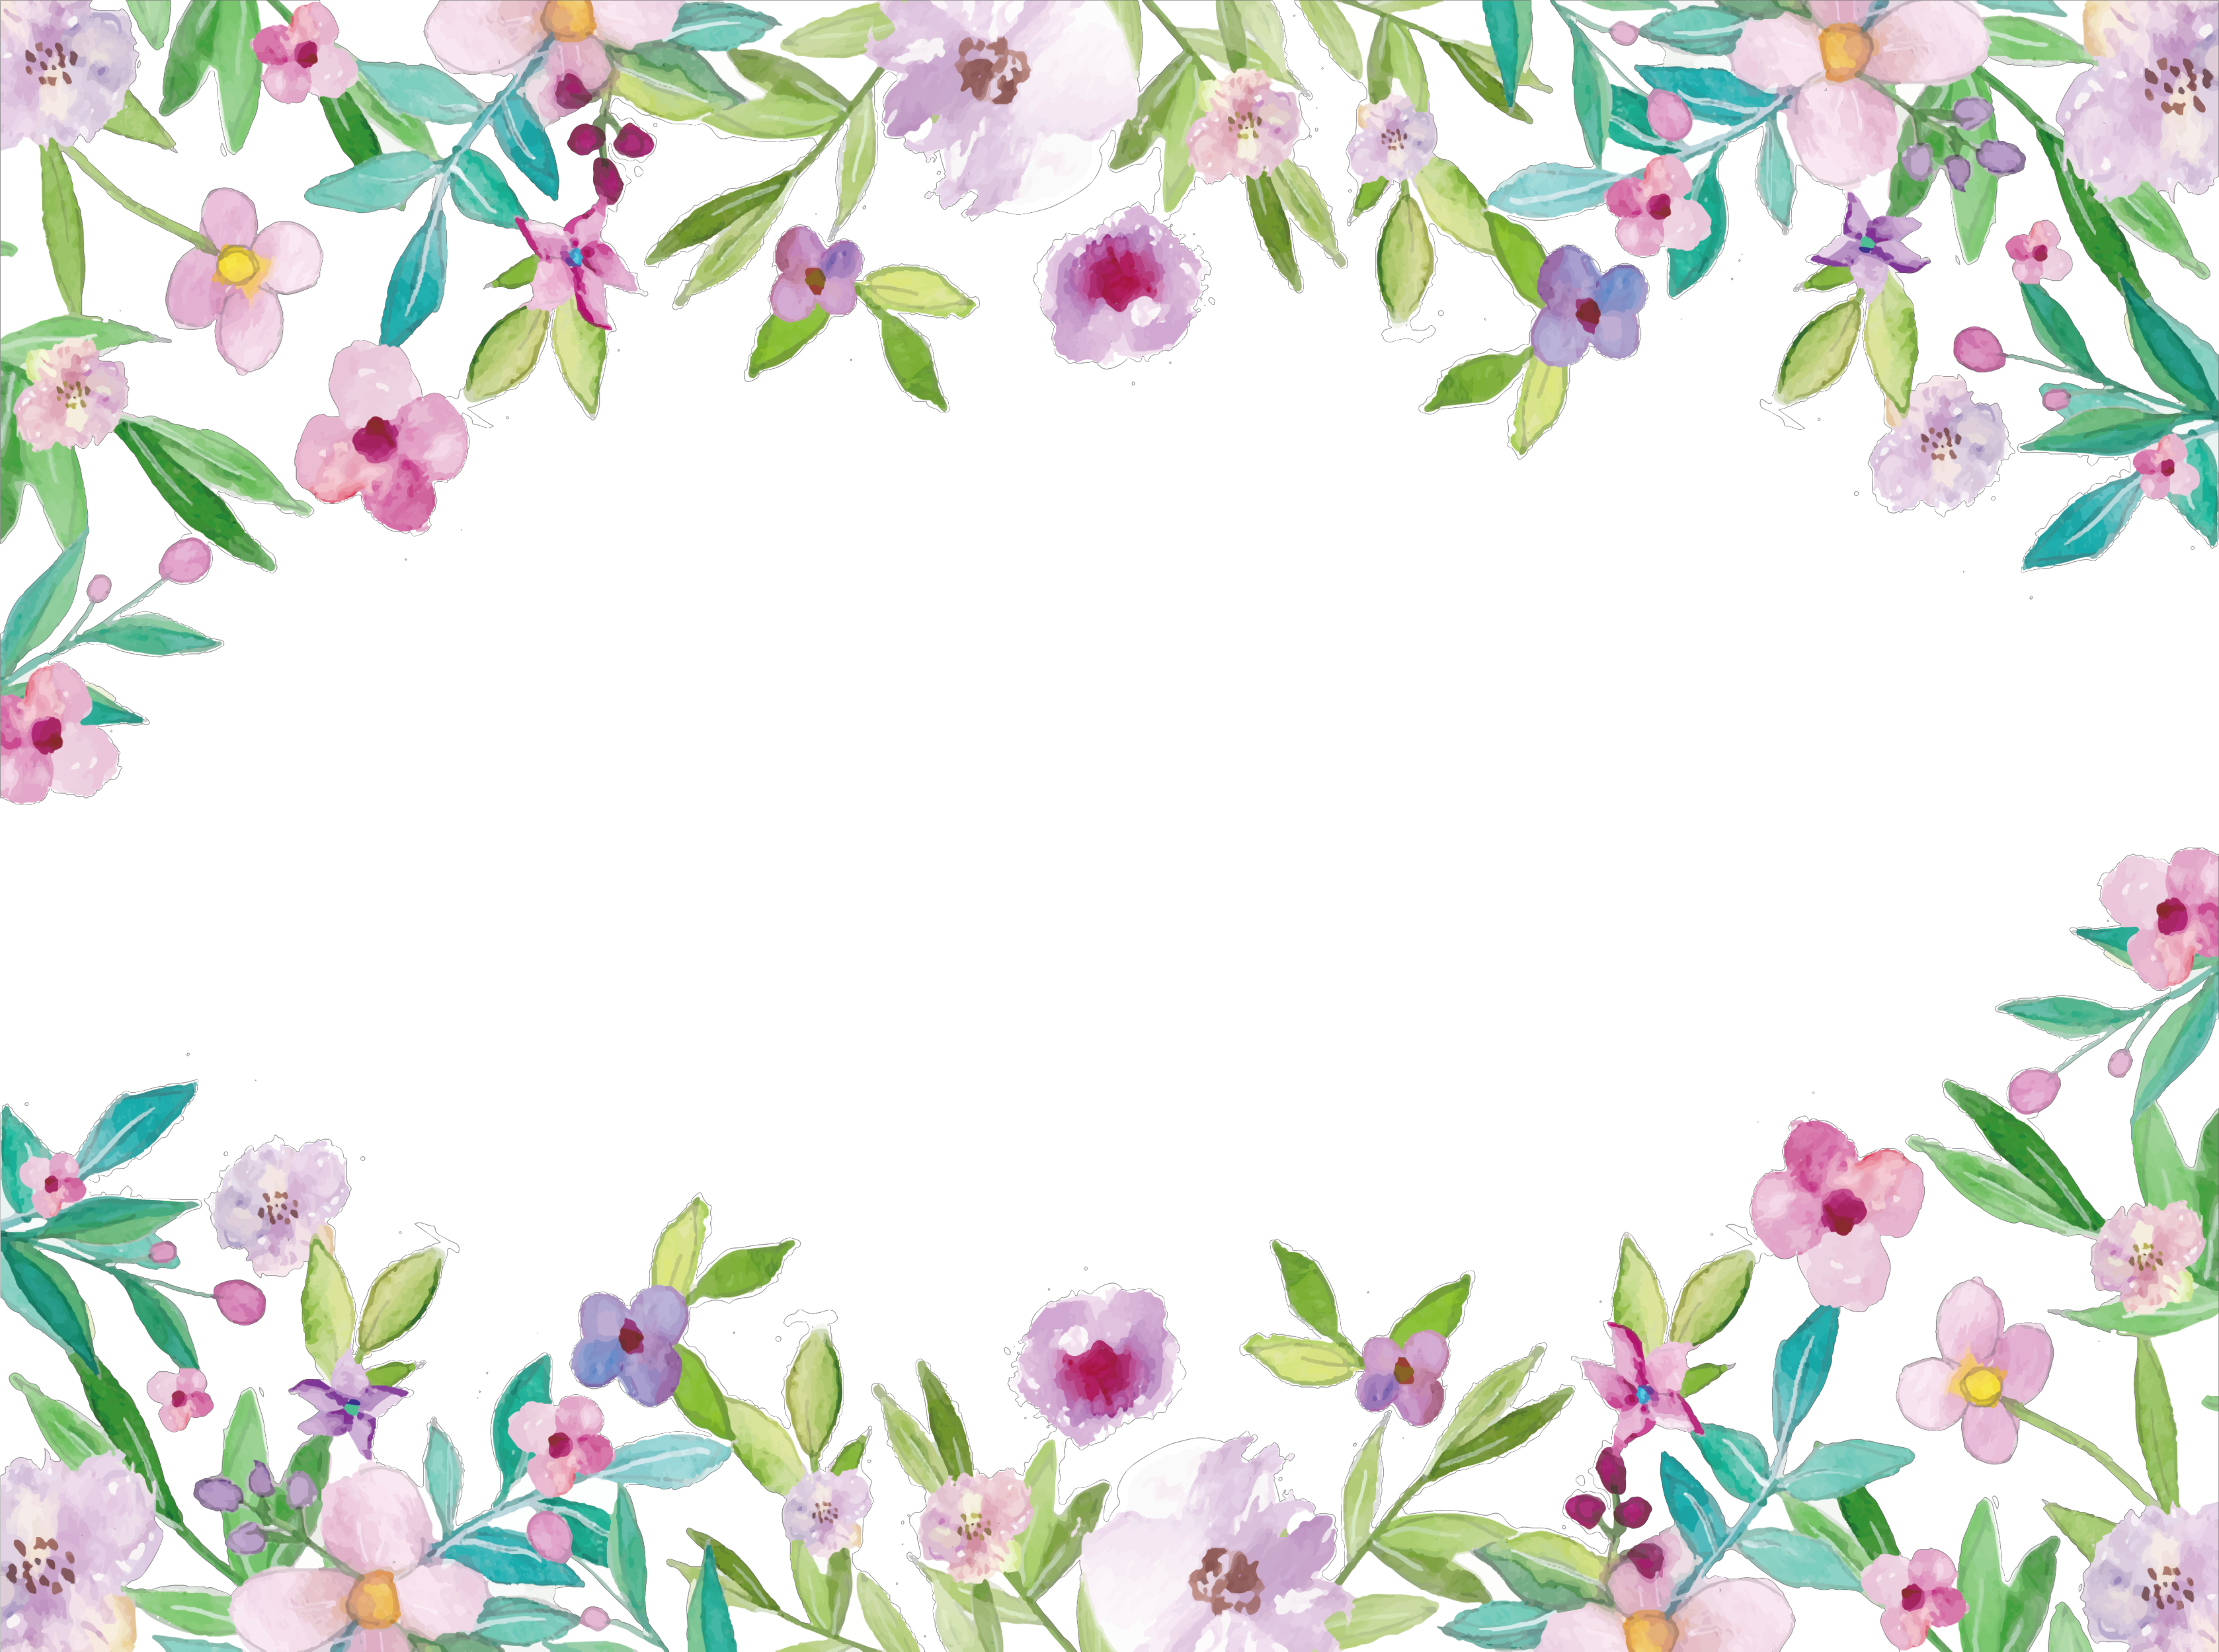 3356x2499 Ftestickers Watercolor Flowers Frame Borders